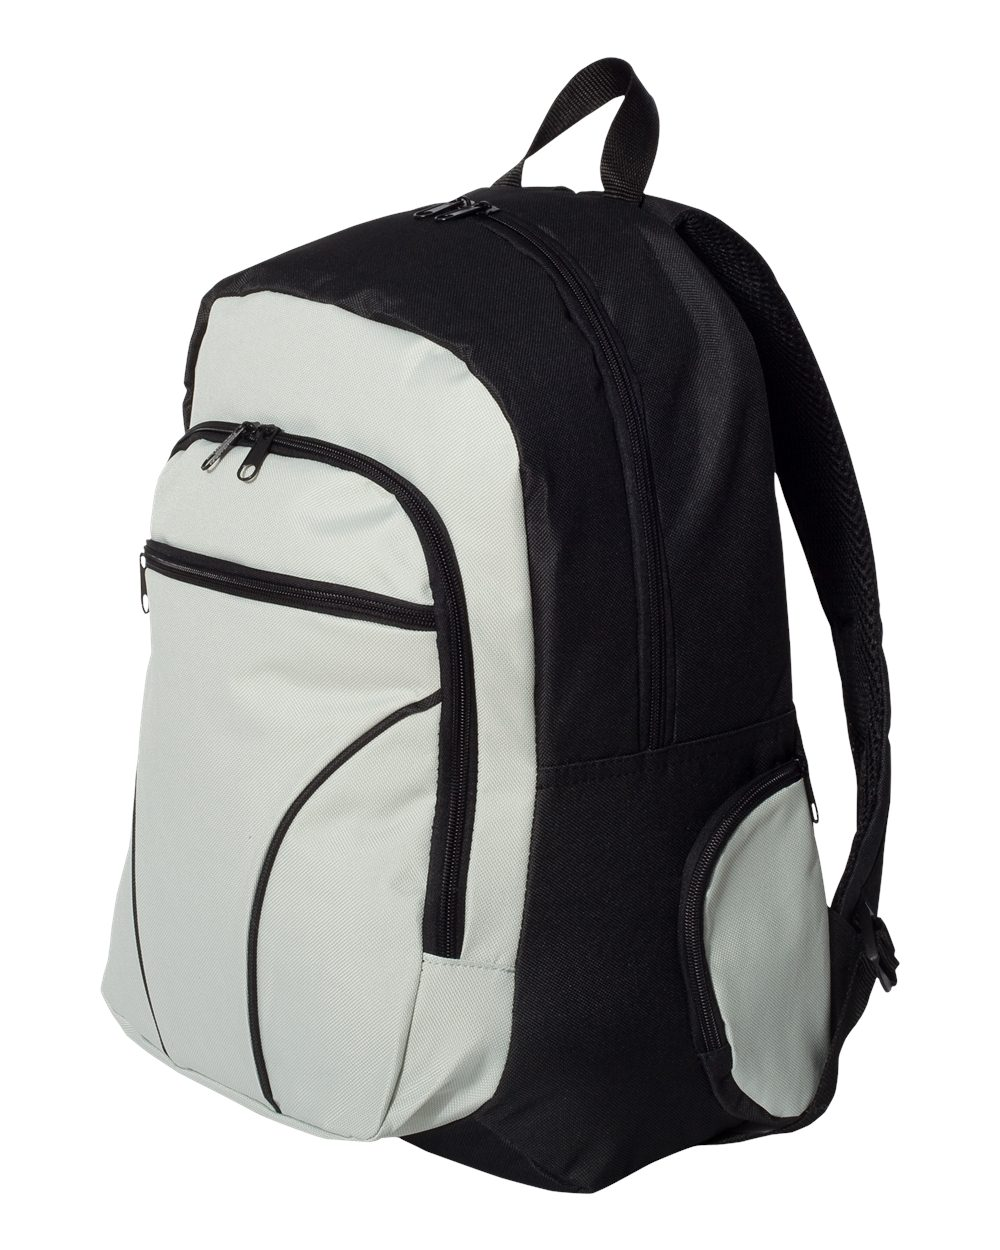 19 Inch Laptop Backpack WLU9LjIg